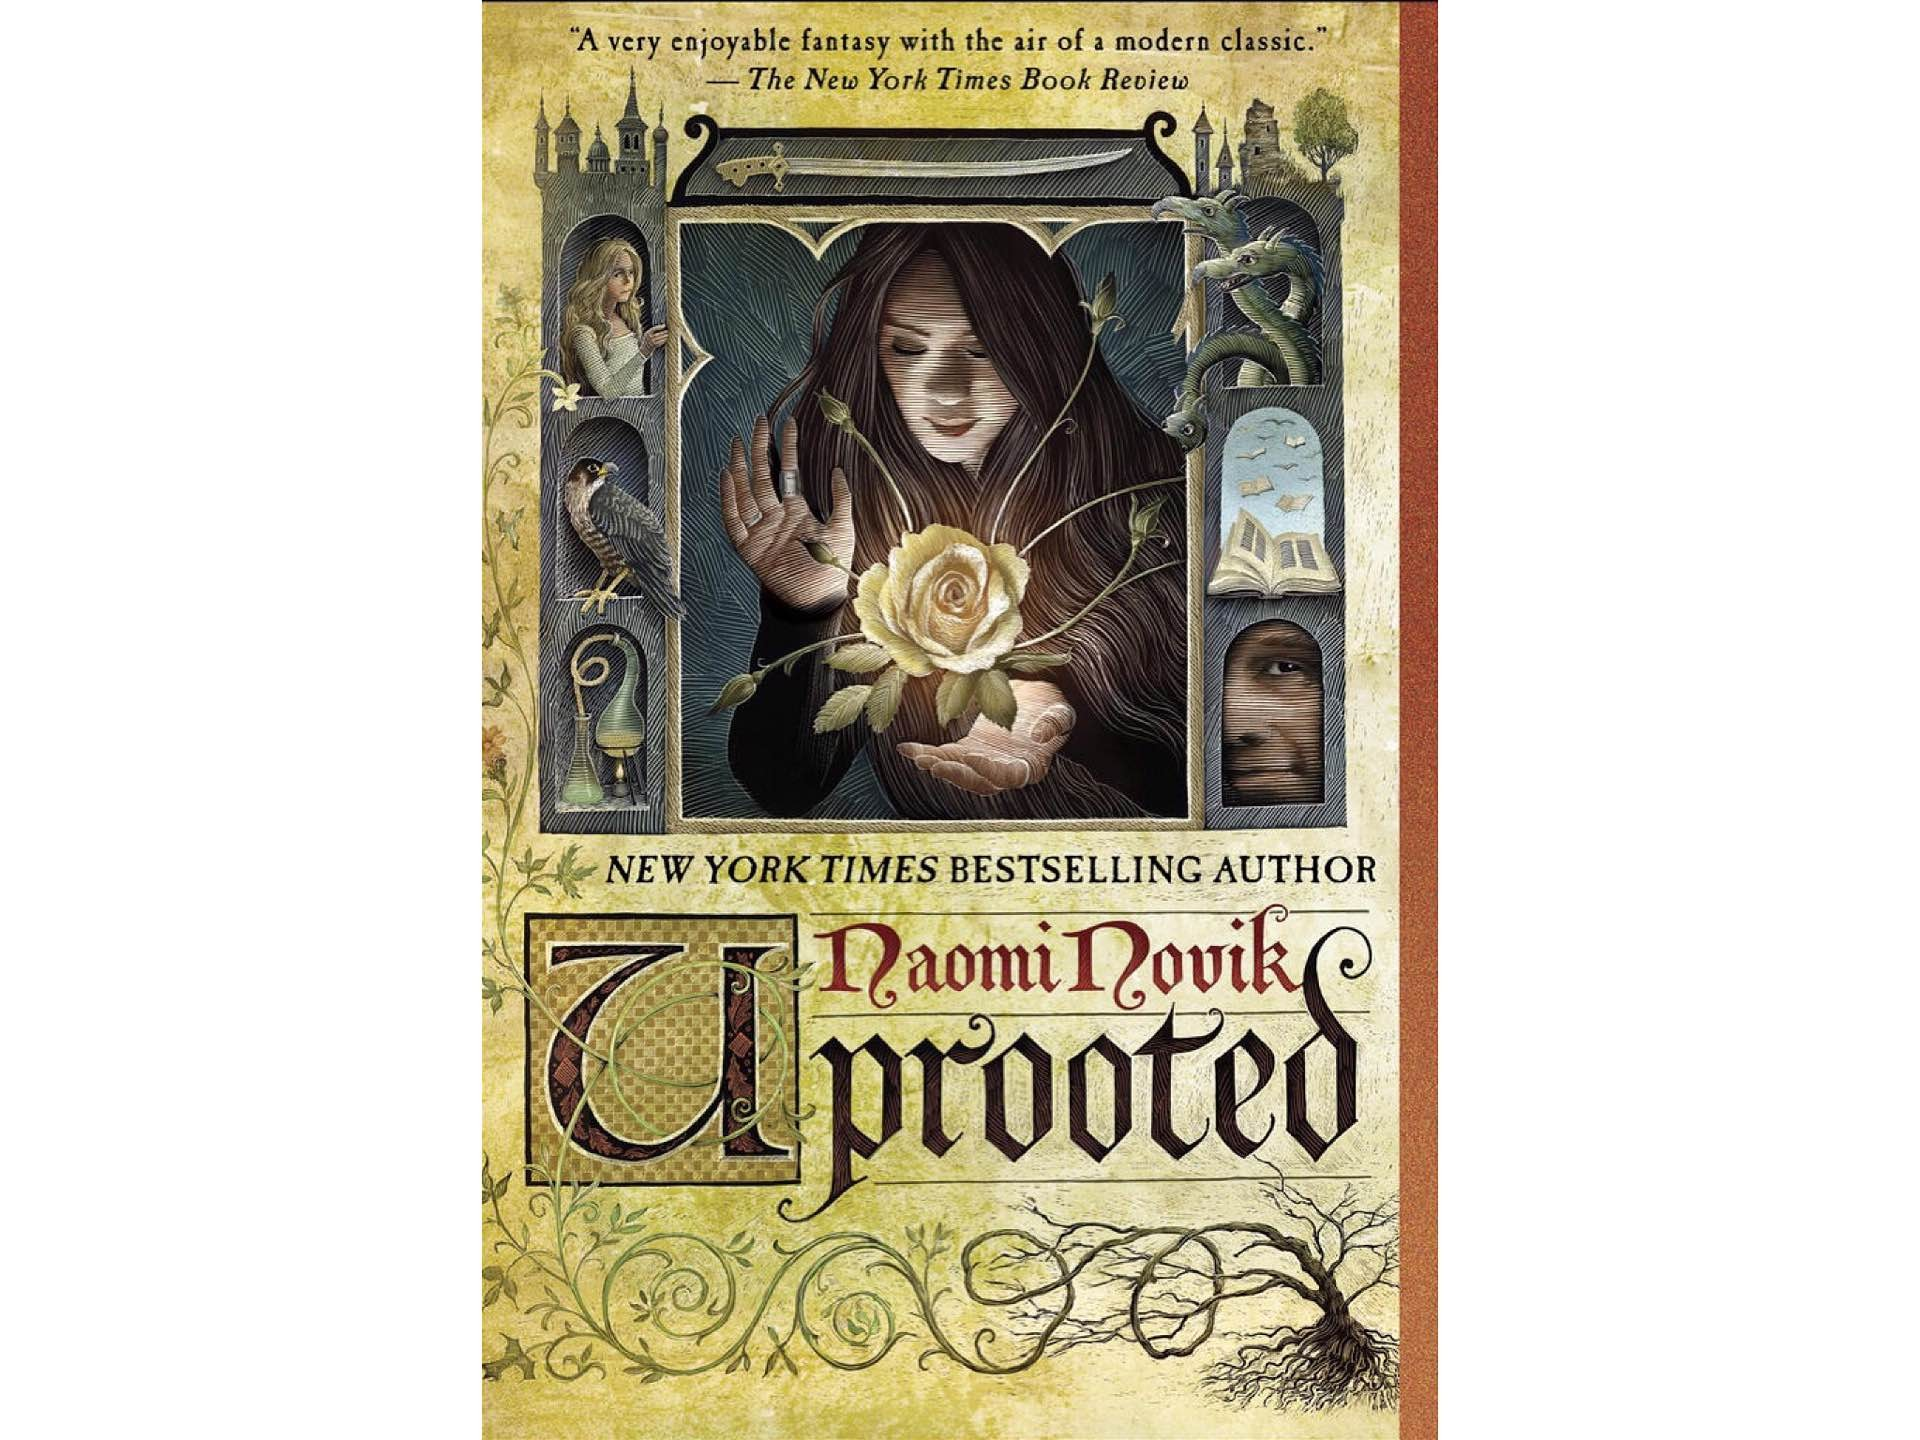 Uprooted by Naomi Novik.